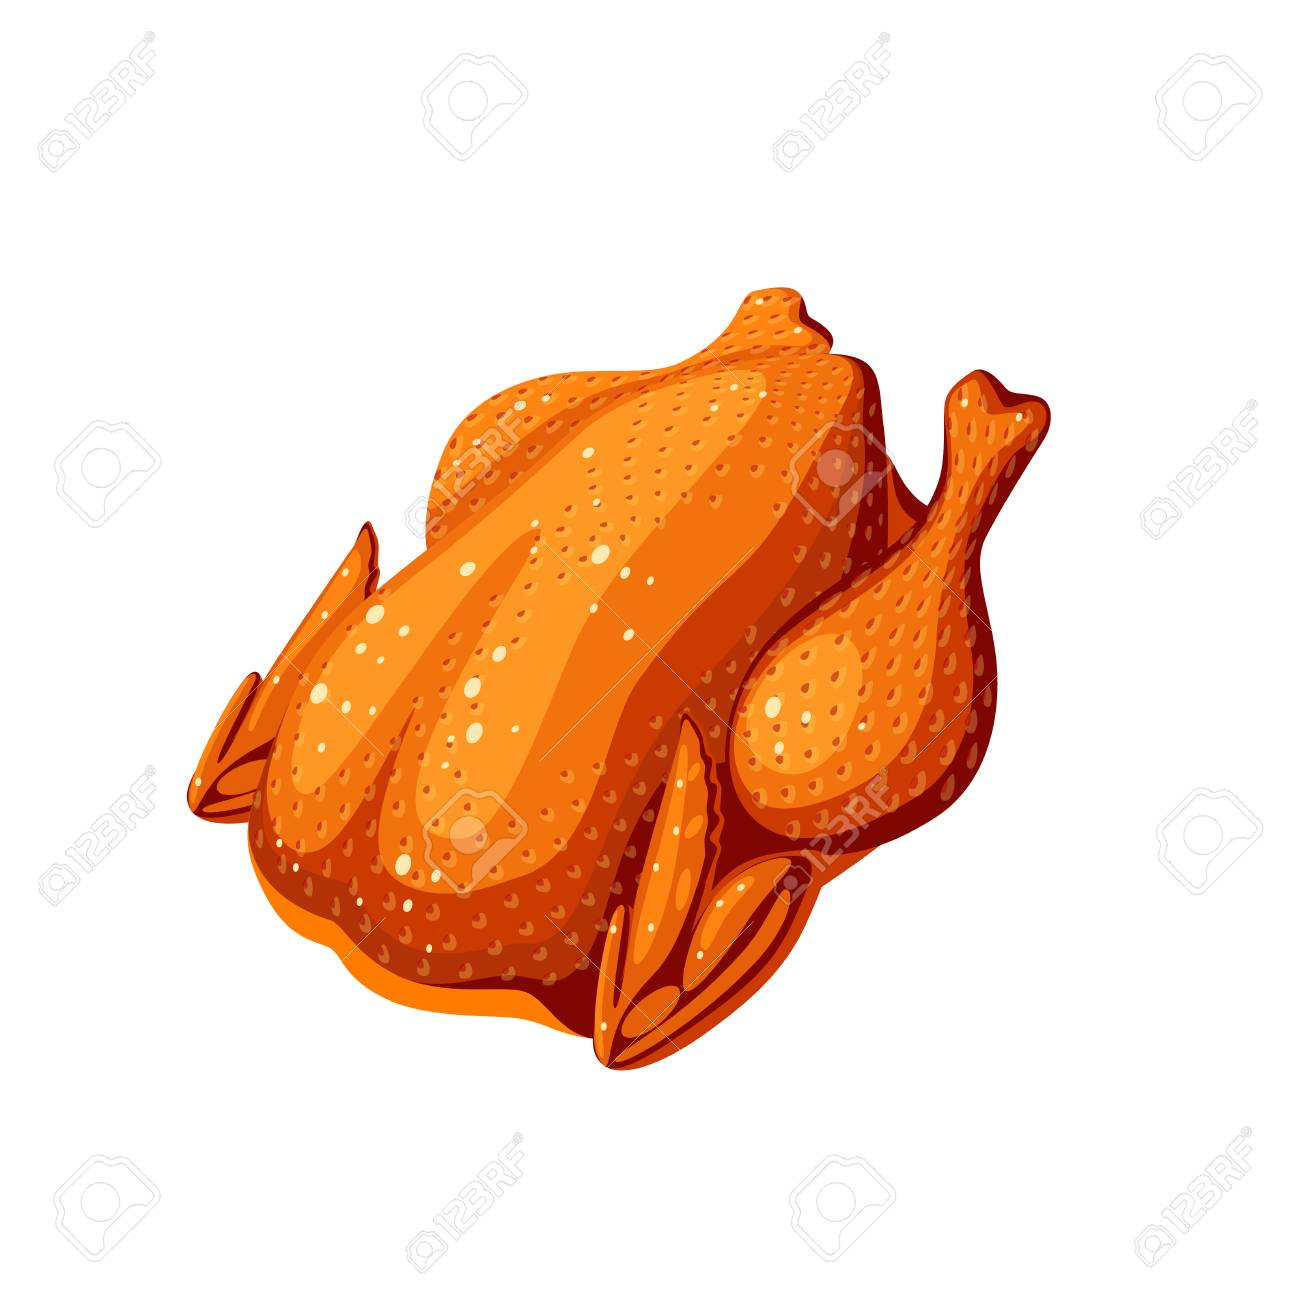 Fried whole chicken. Vector illustration cartoon flat icon isolated on white. - 106196674